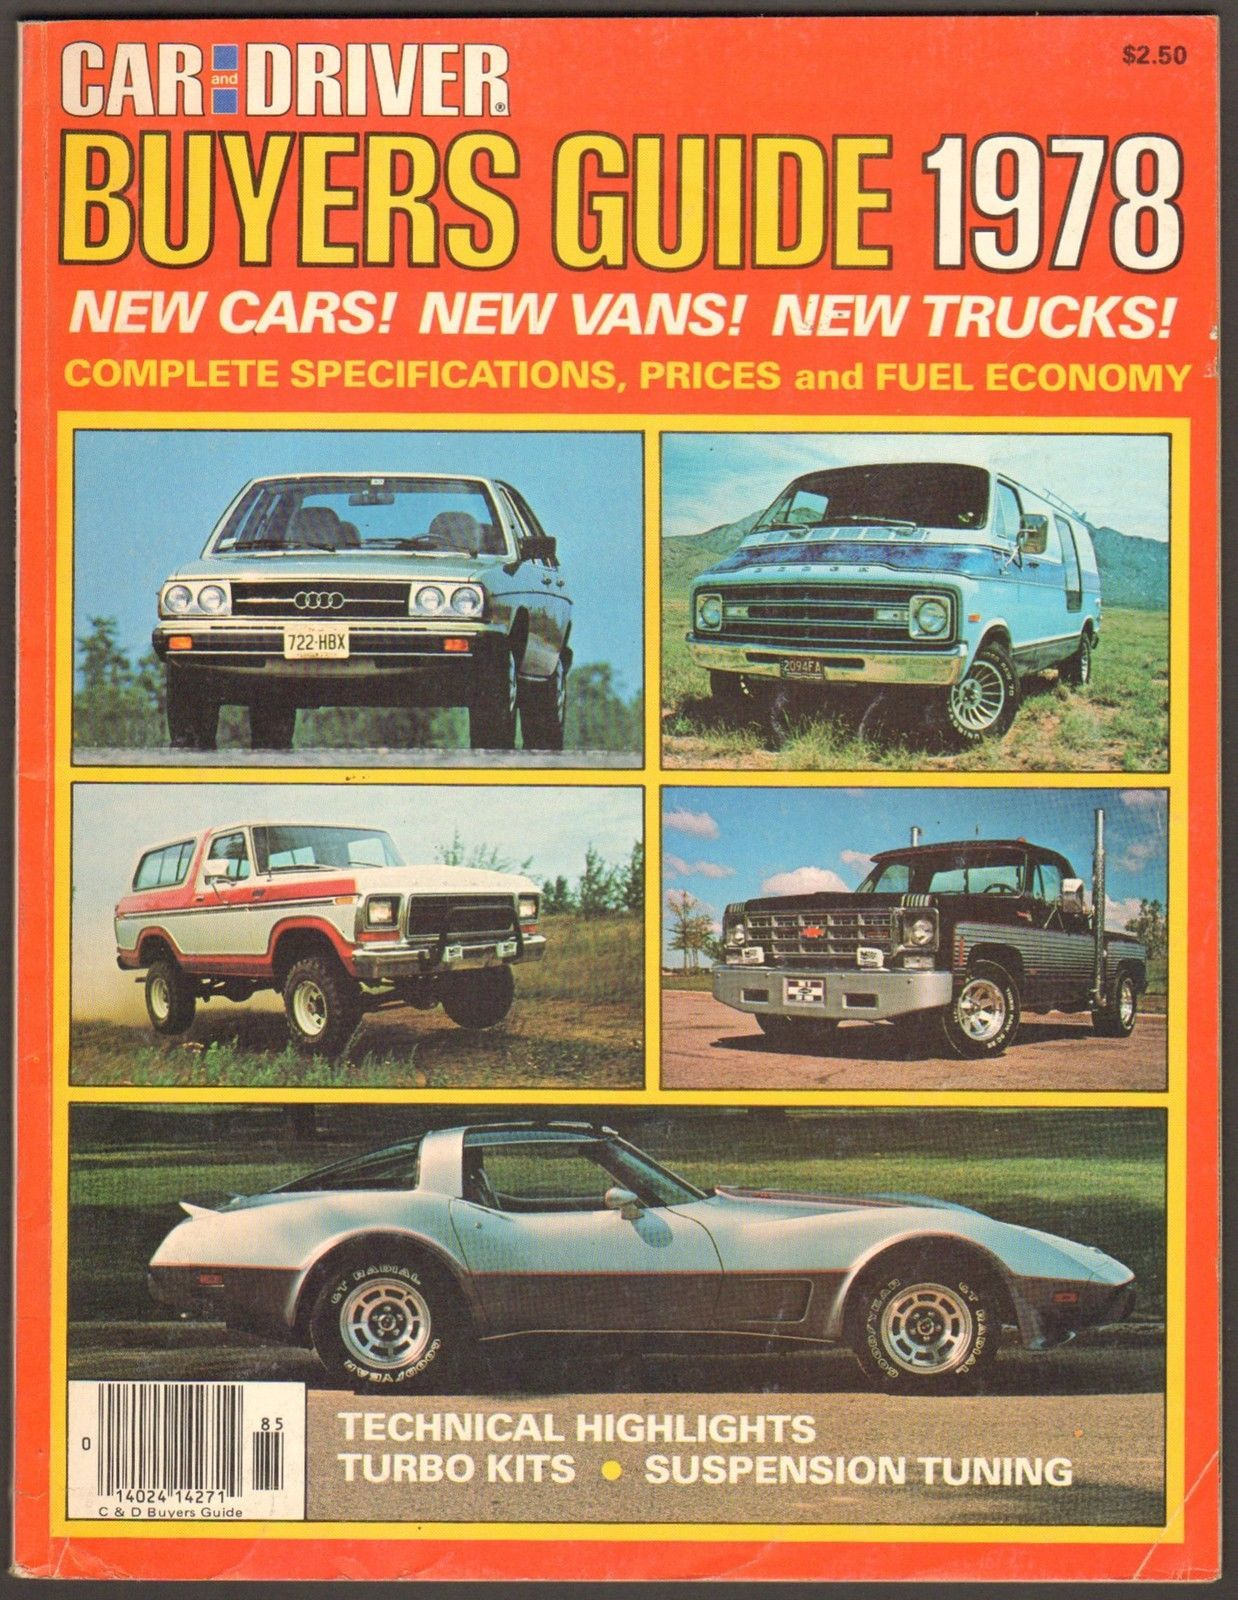 1978 Car and Driver Magazine Buyers Guide New Cars Vans Trucks ...